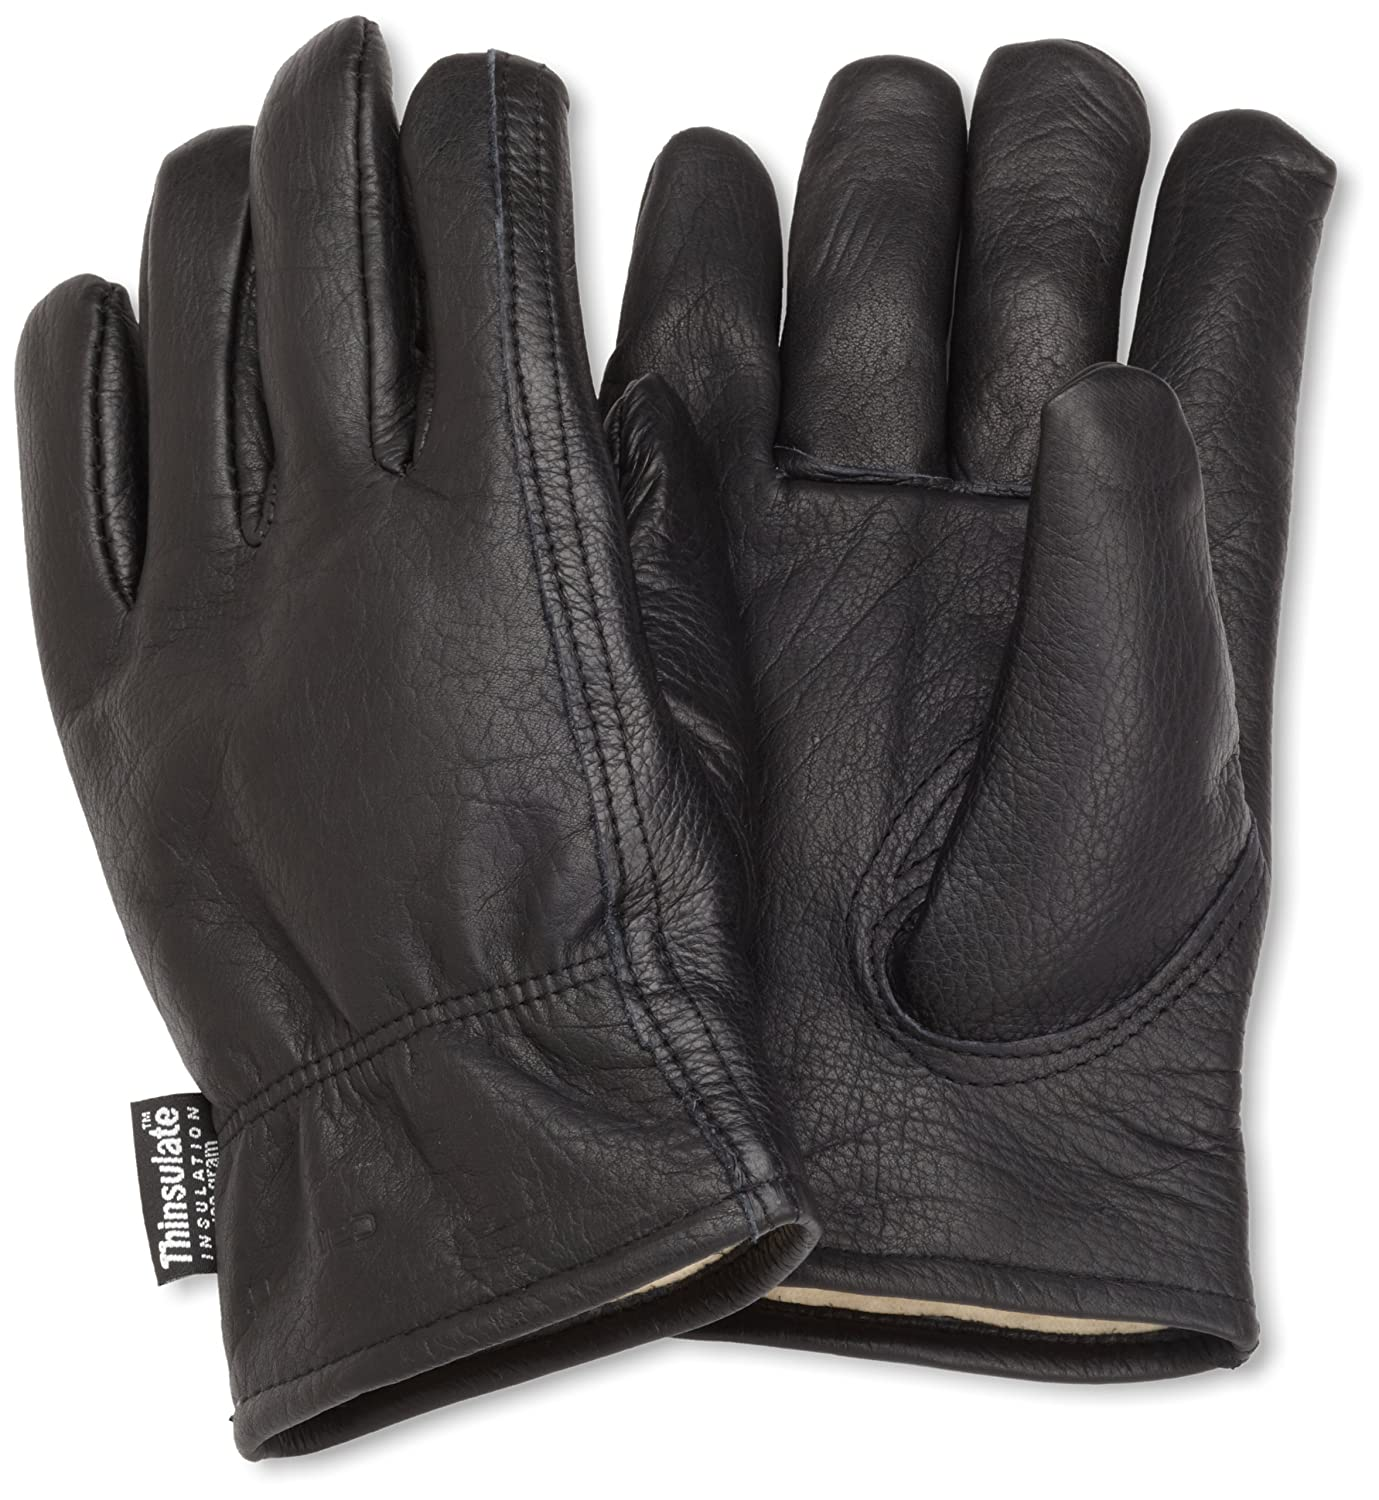 Thinsulate leather driving gloves - Amazon Com Carhartt Men S Insulated Full Grain Leather Driver Work Glove Black Small Clothing